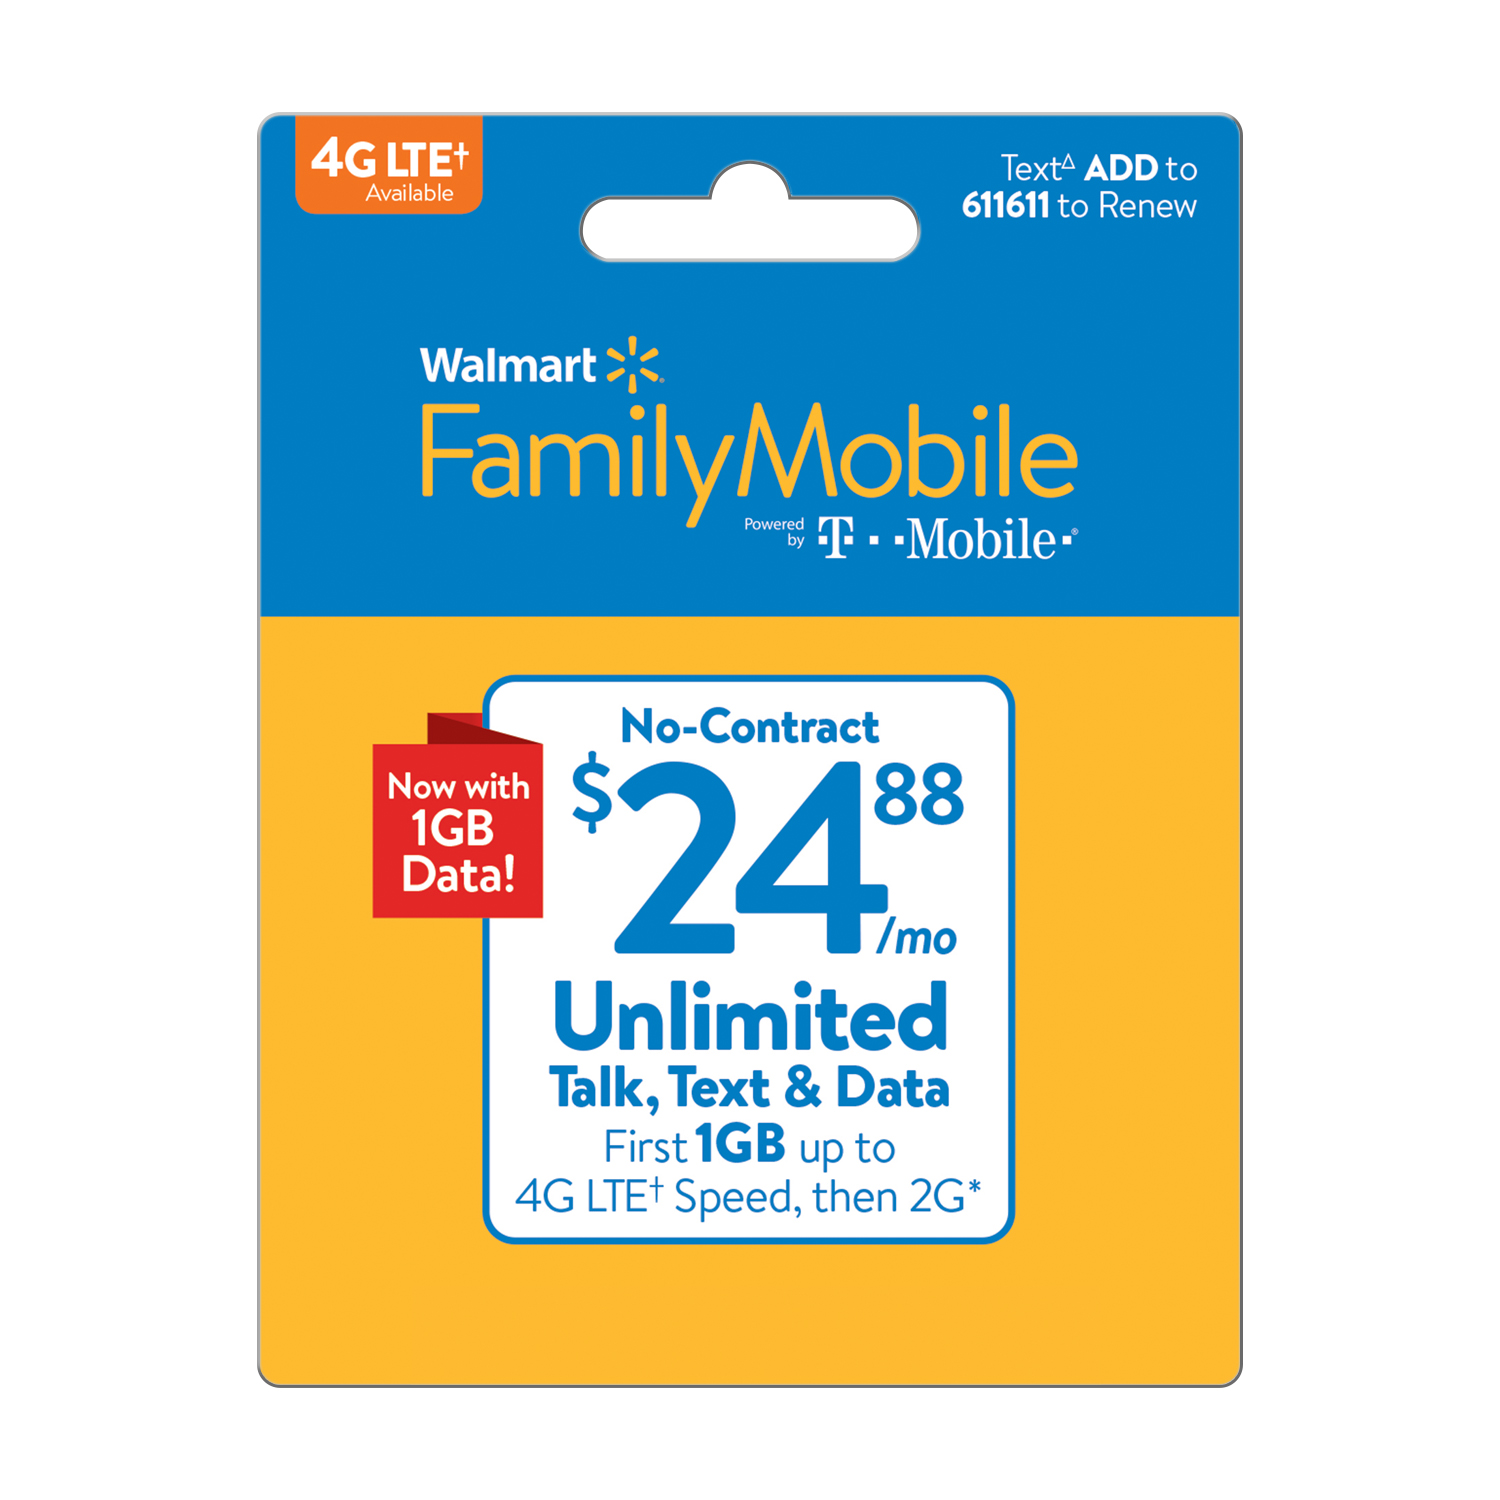 Prepaid telecom operator virgin mobile usa will soon start selling - Walmart Family Mobile 24 88 Unlimited Monthly Plan 1gb At High Speed Then 2g